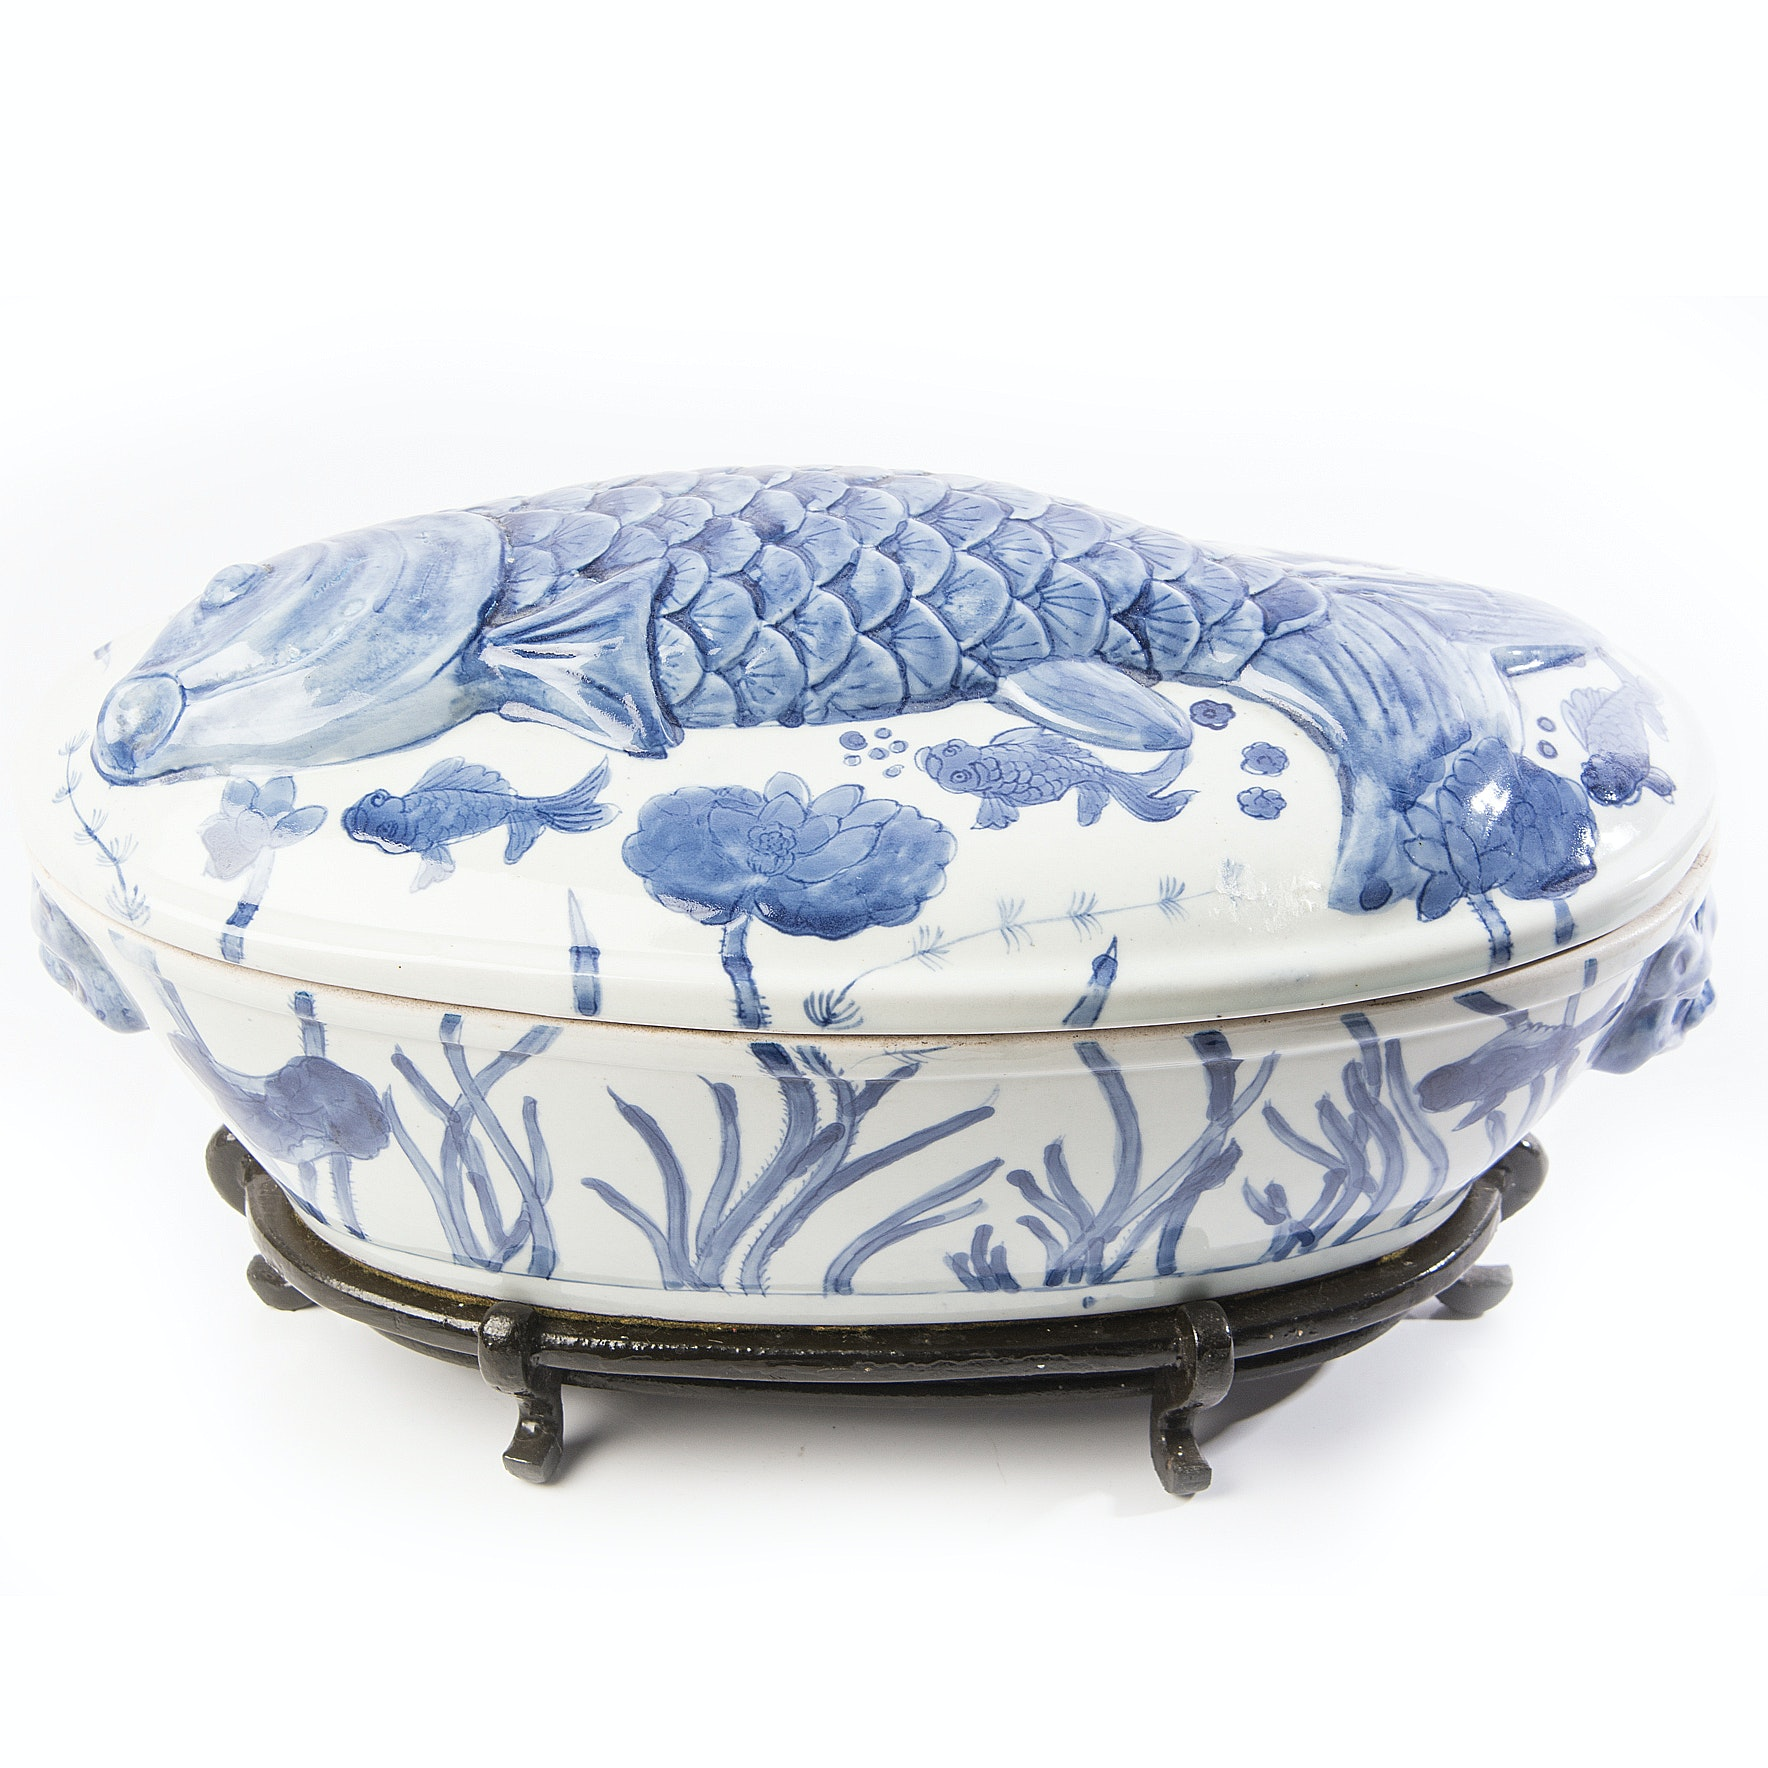 Blue and White Porcelain Covered Fish Bowl